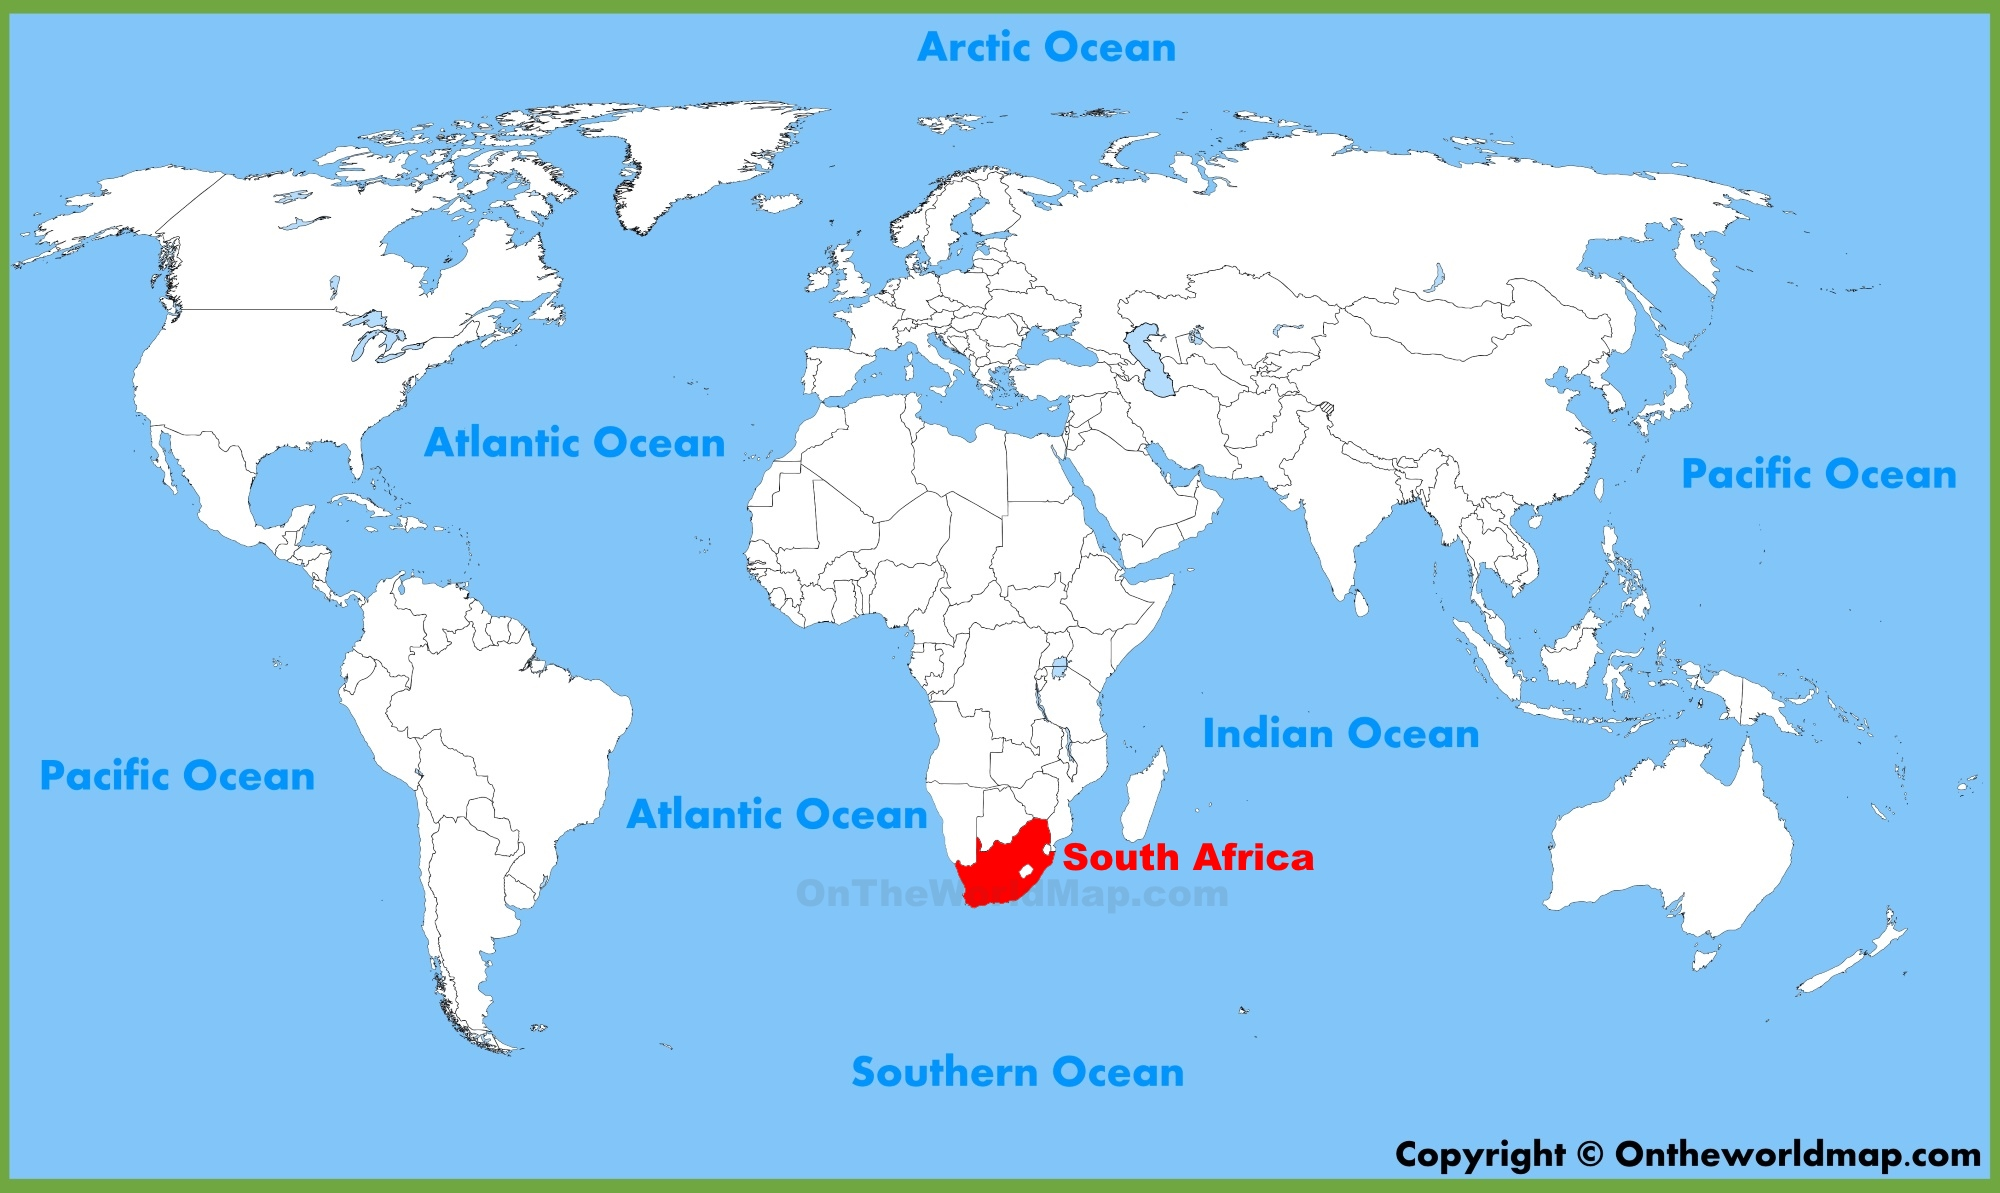 South Africa World Map South Africa location on the World Map